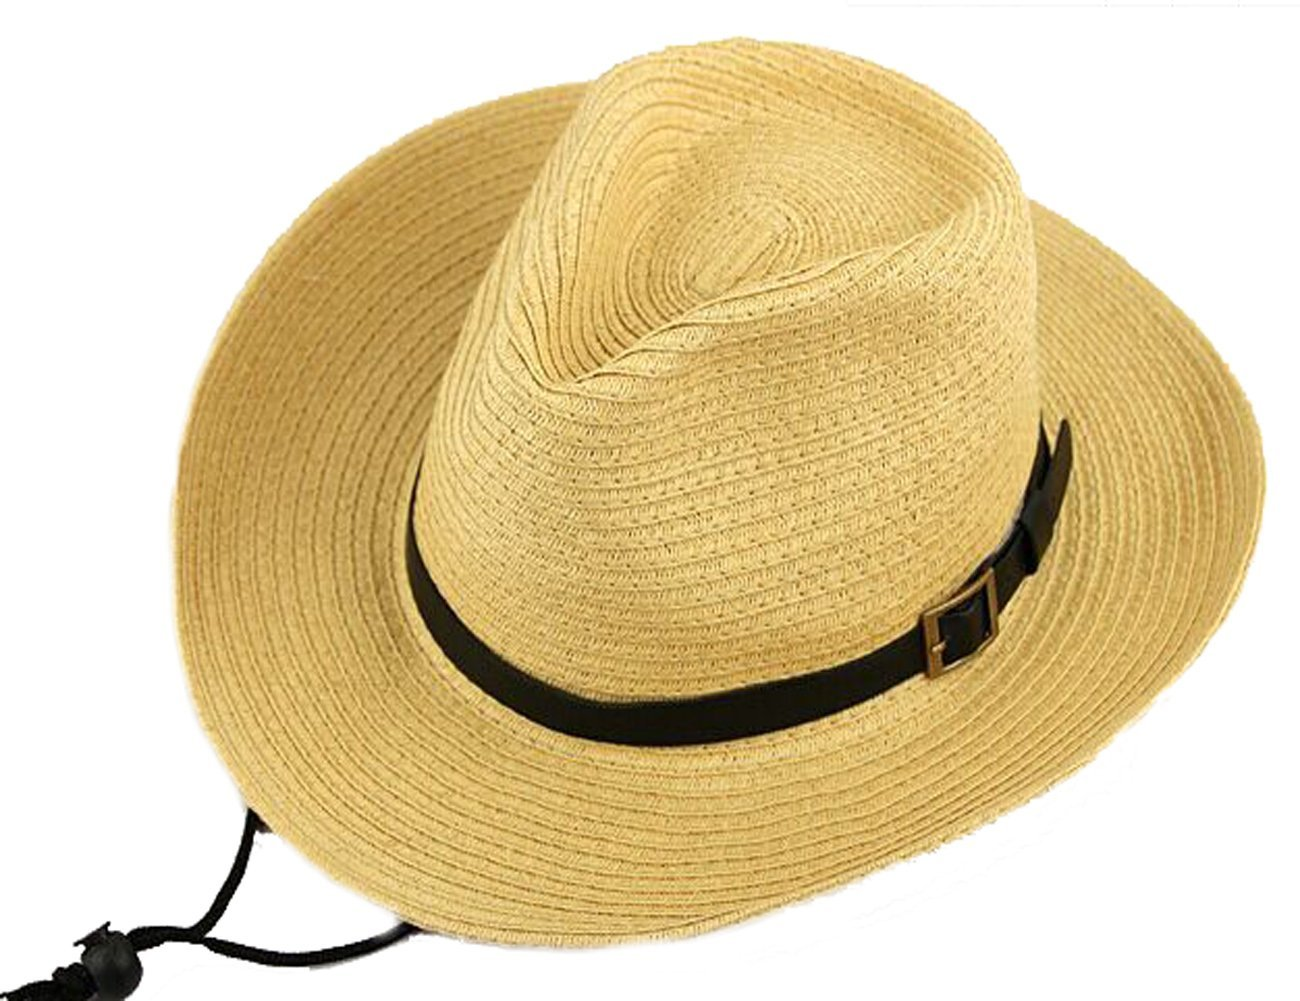 e0a3b79f Get Quotations · Men's Floppy Packable Straw Hat Beach Cap Classic Western  Newsboy Cap Fedora Hat UPF 50+